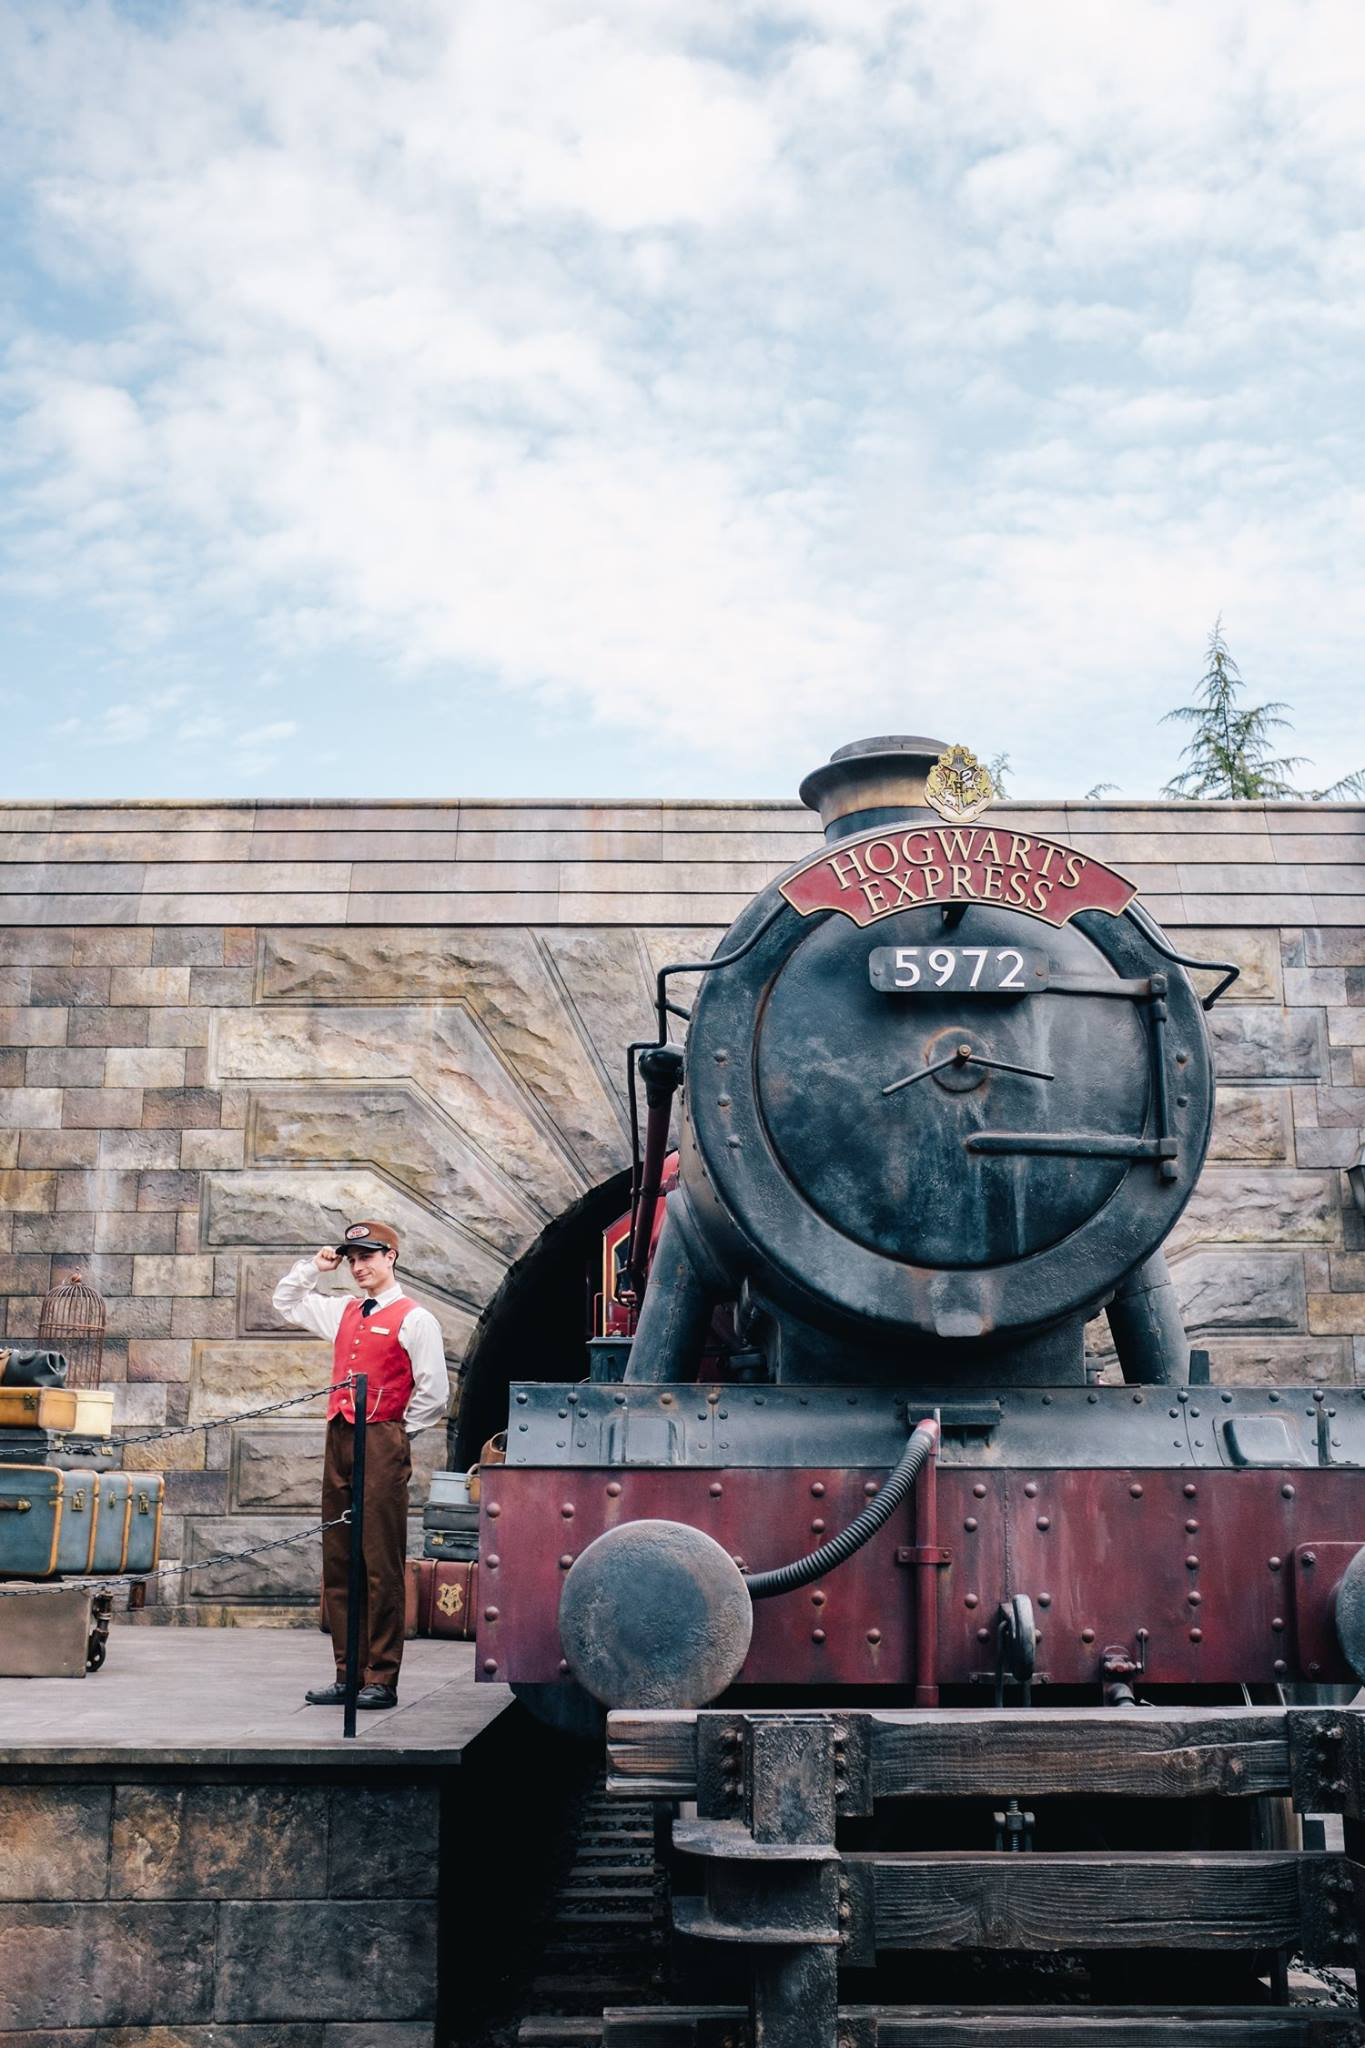 wizarding world of harry potter_maren-hald-bjorgum-11